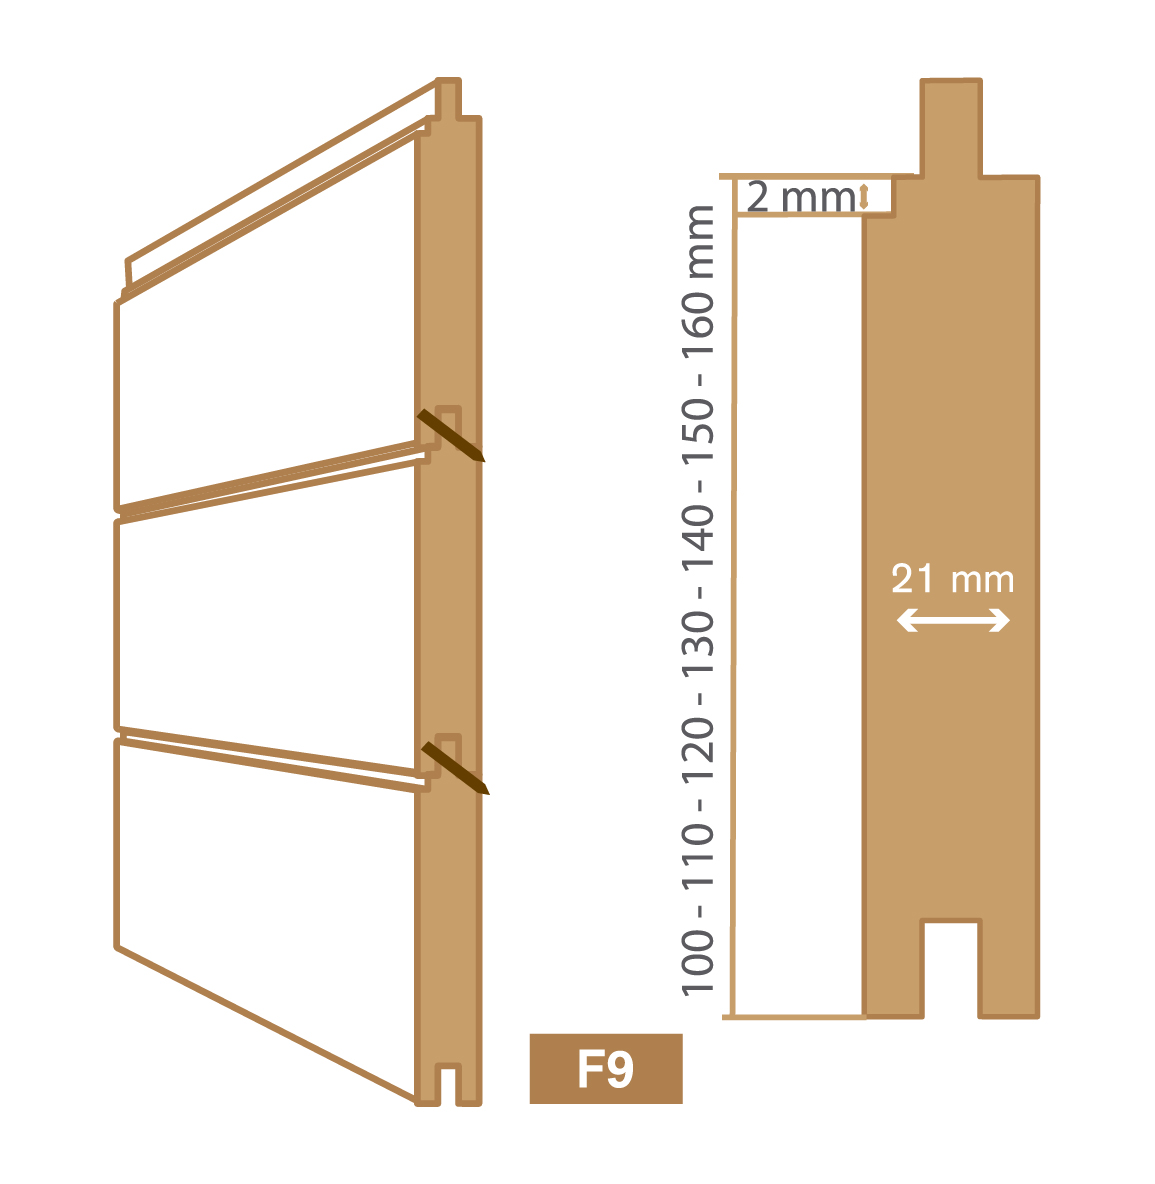 wooden cladding f9 type